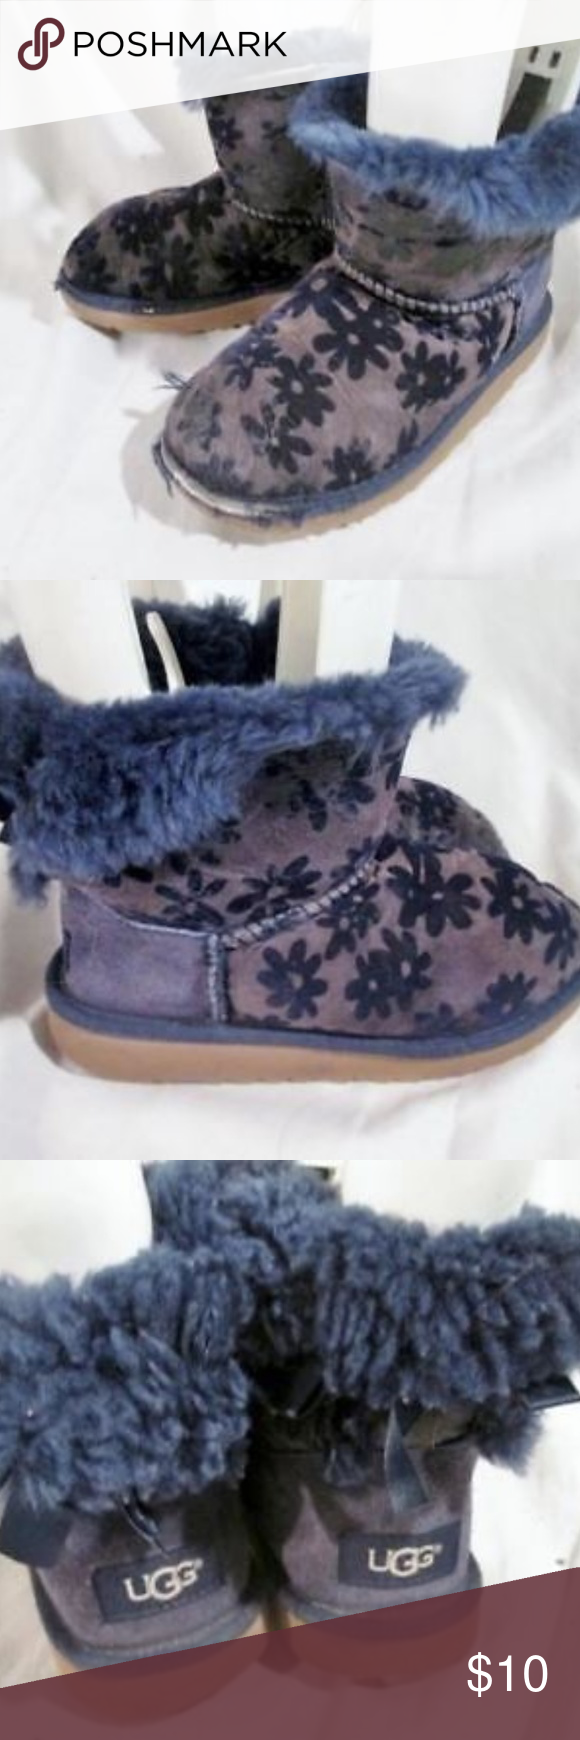 30f1f12041a UGG 1016234K MINI BAILEY BOW FLOWERS Boot Awesome pair of toddler ...